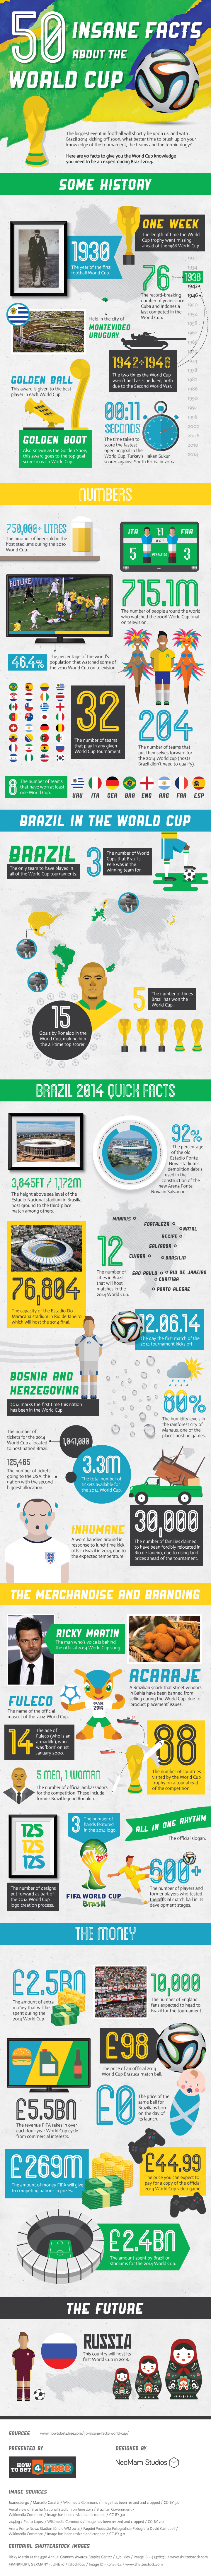 50 Insane Facts About the World Cup